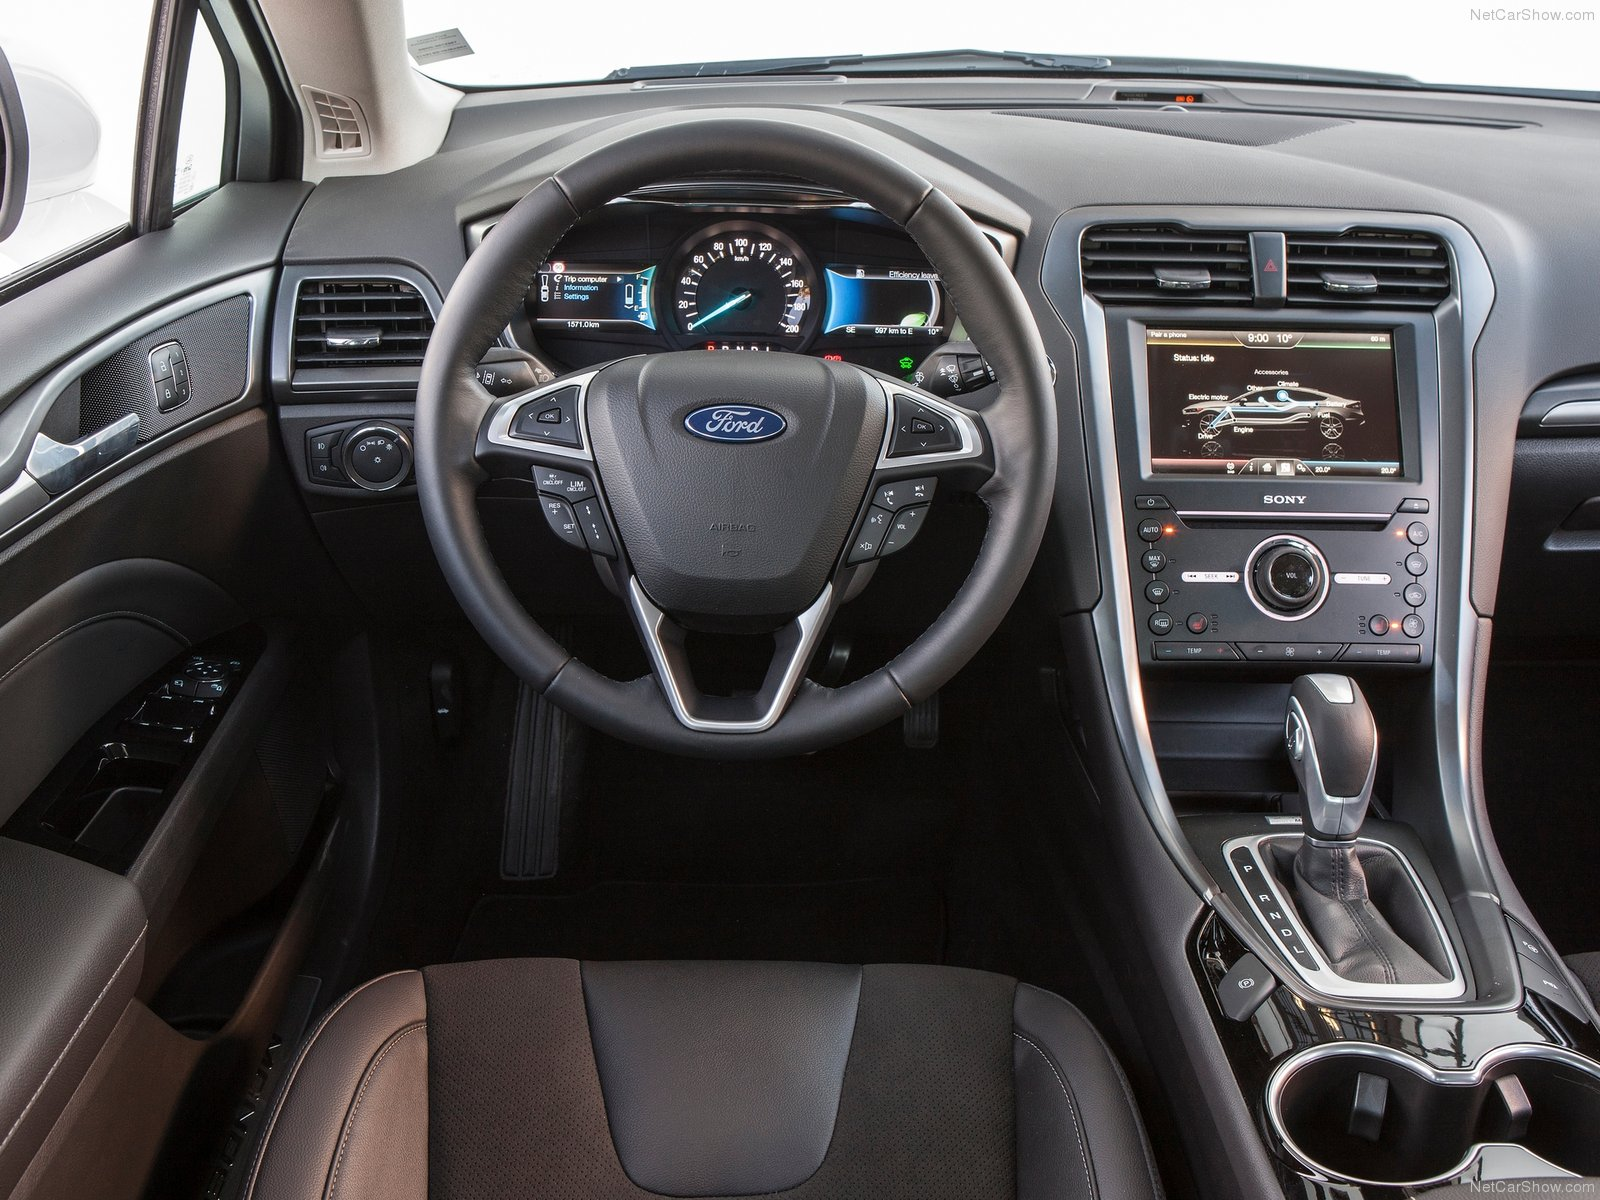 astounding-design-of-the-black-dash-added-with-black-steering-wheels-as-the-ford-mondeo-2015-interior-ideas